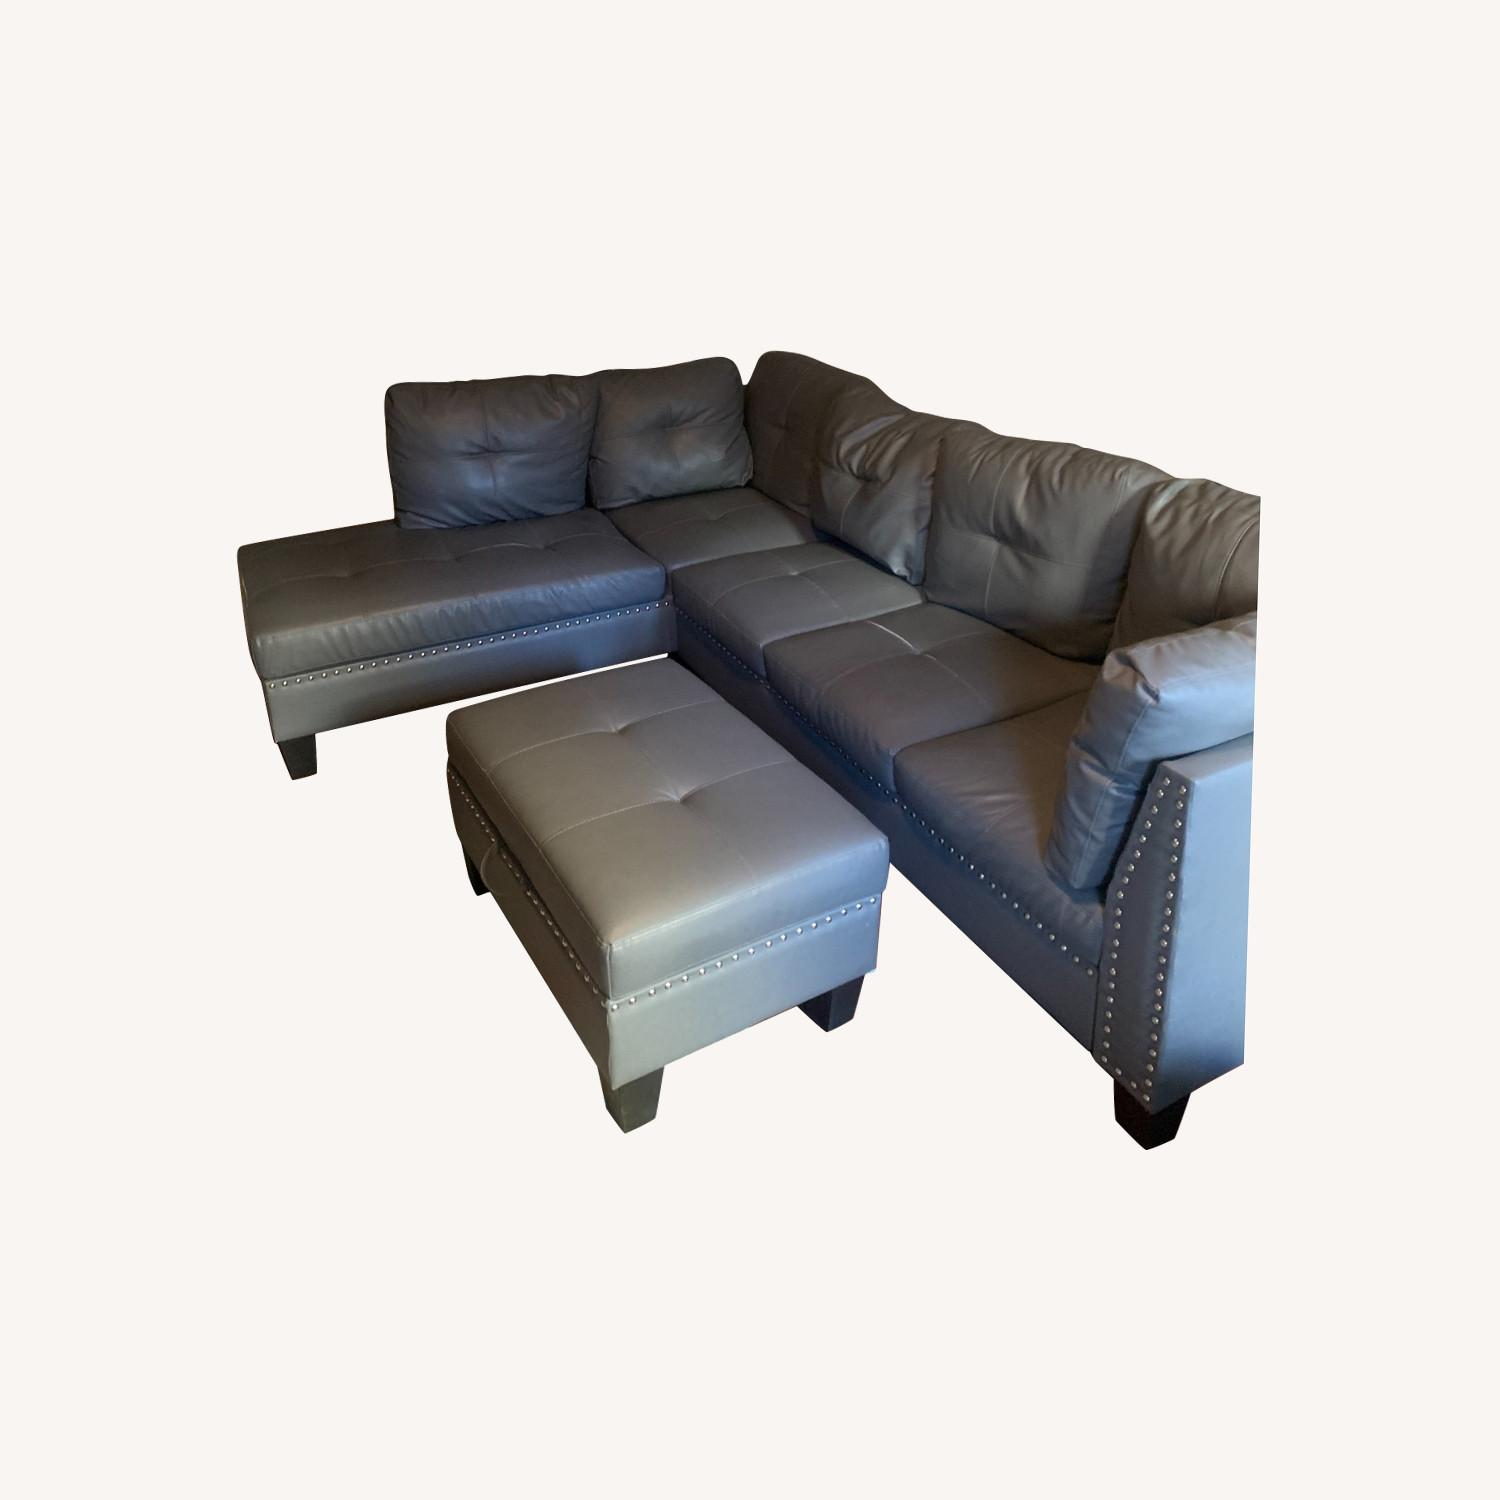 Wayfair Blue Sectional with Storage Ottoman - image-0